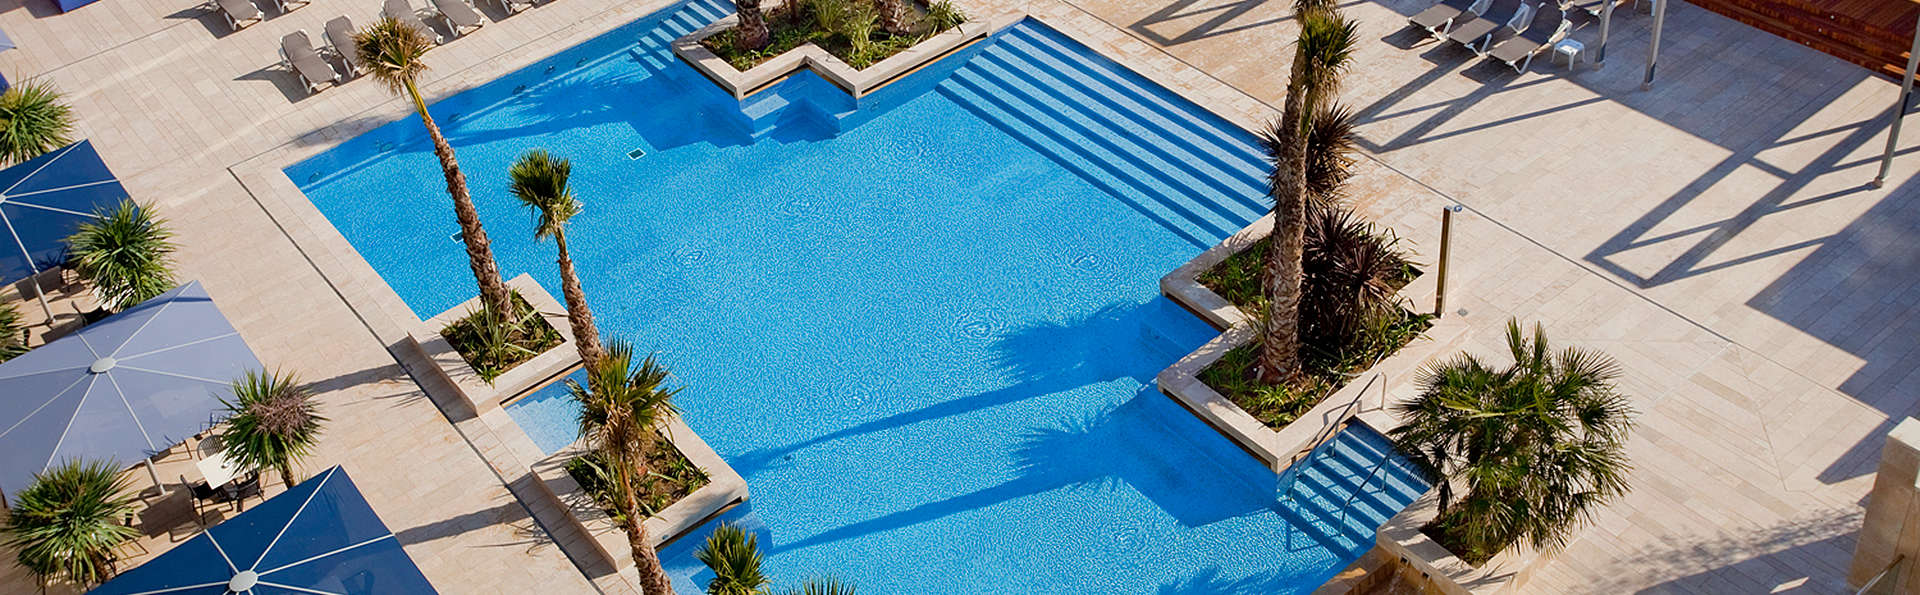 Blaumar Hotel - EDIT_Pool2.jpg